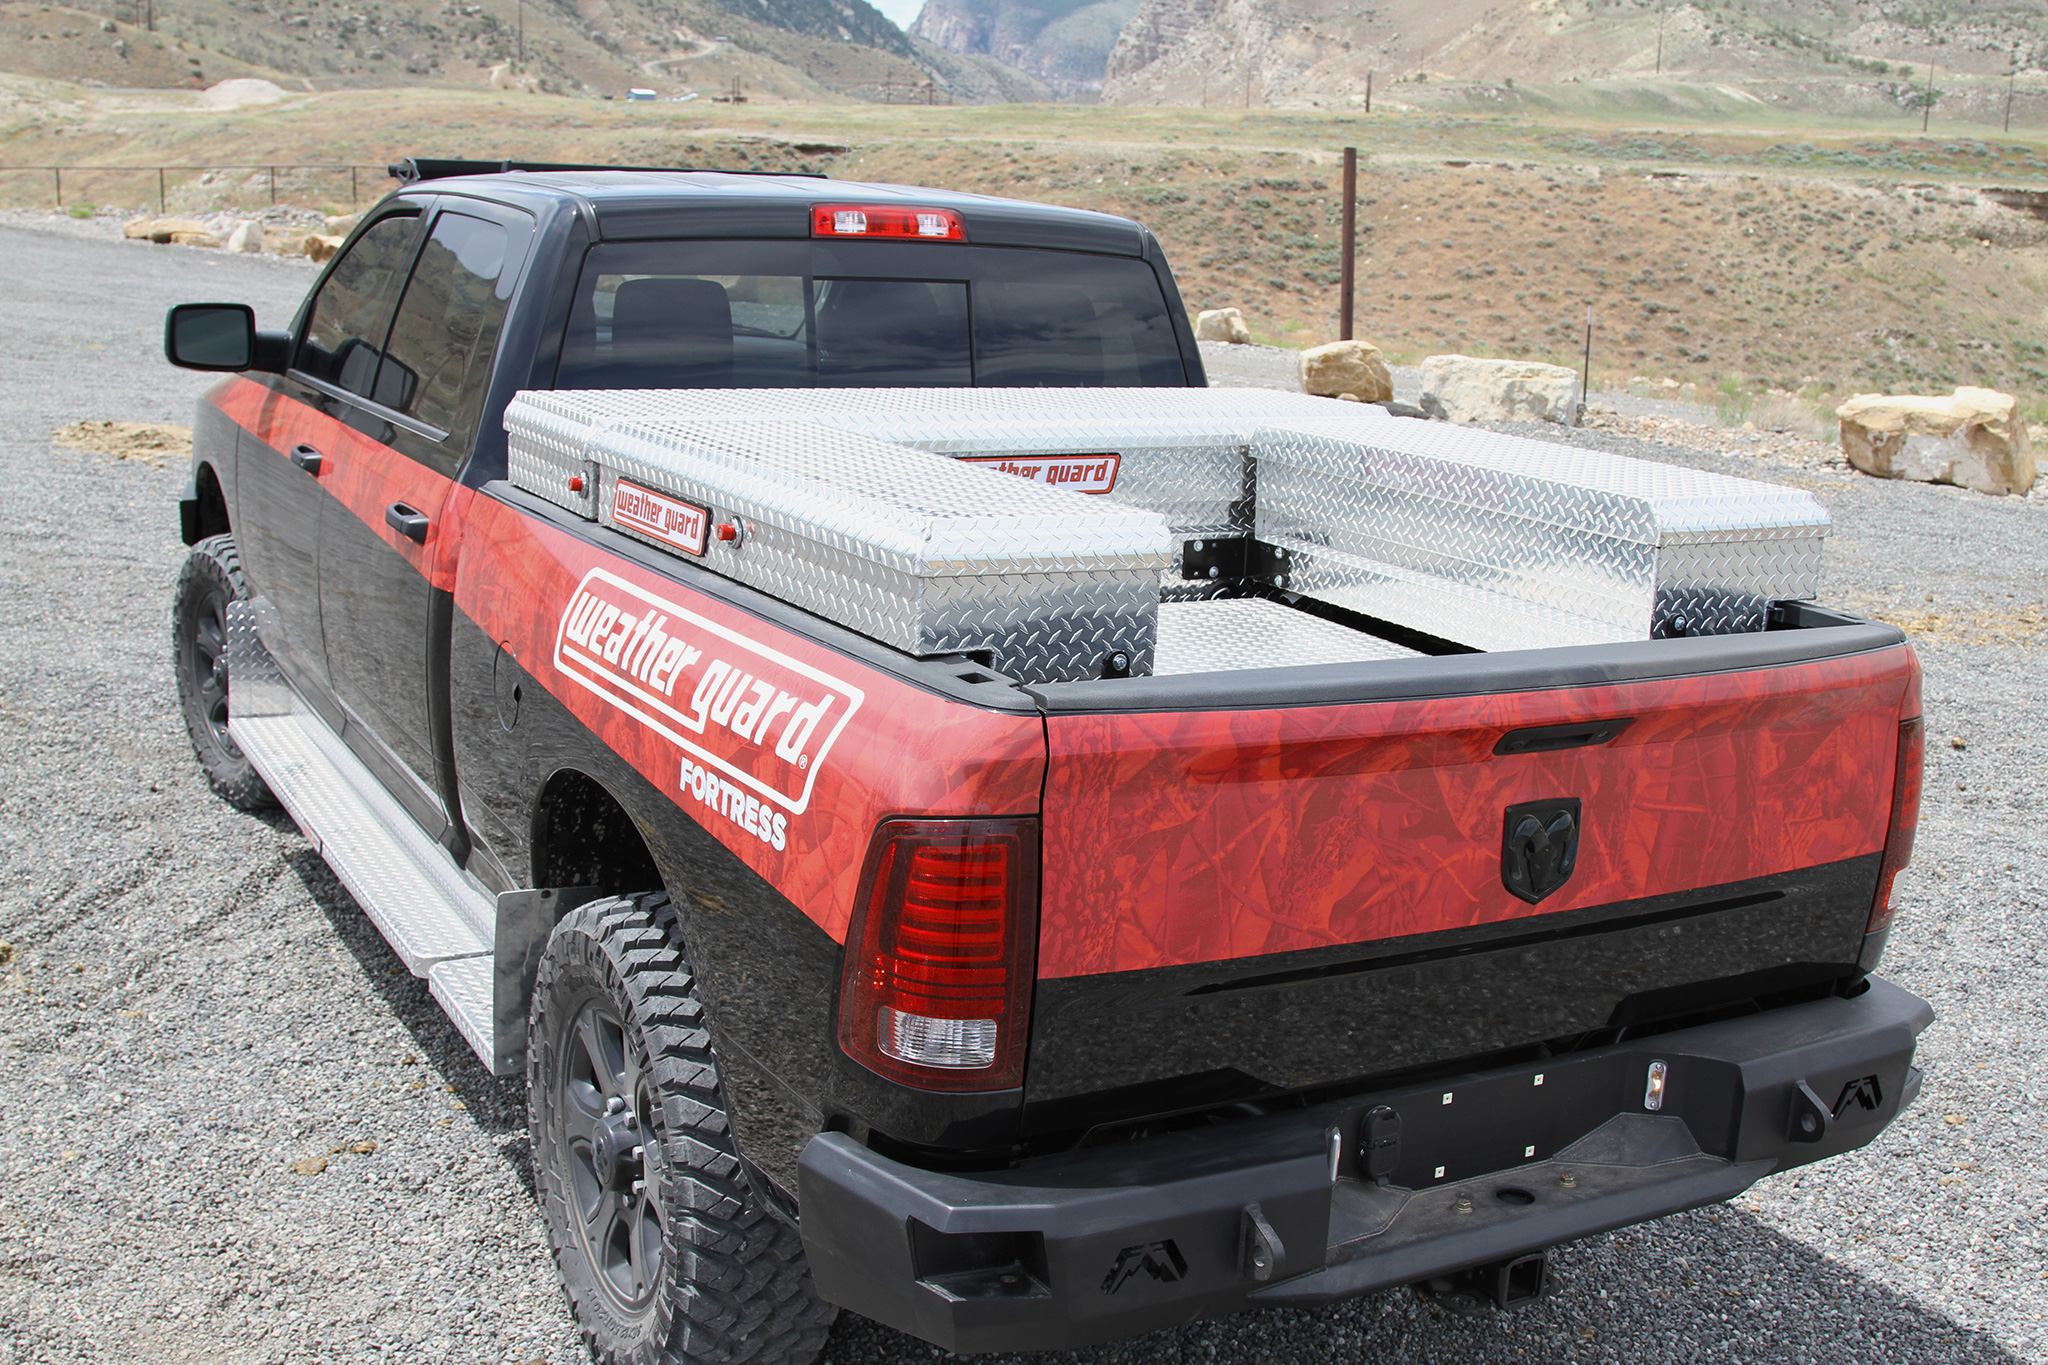 & Best 5 Weather Guard Tool Boxes | WeatherGuard Reviews